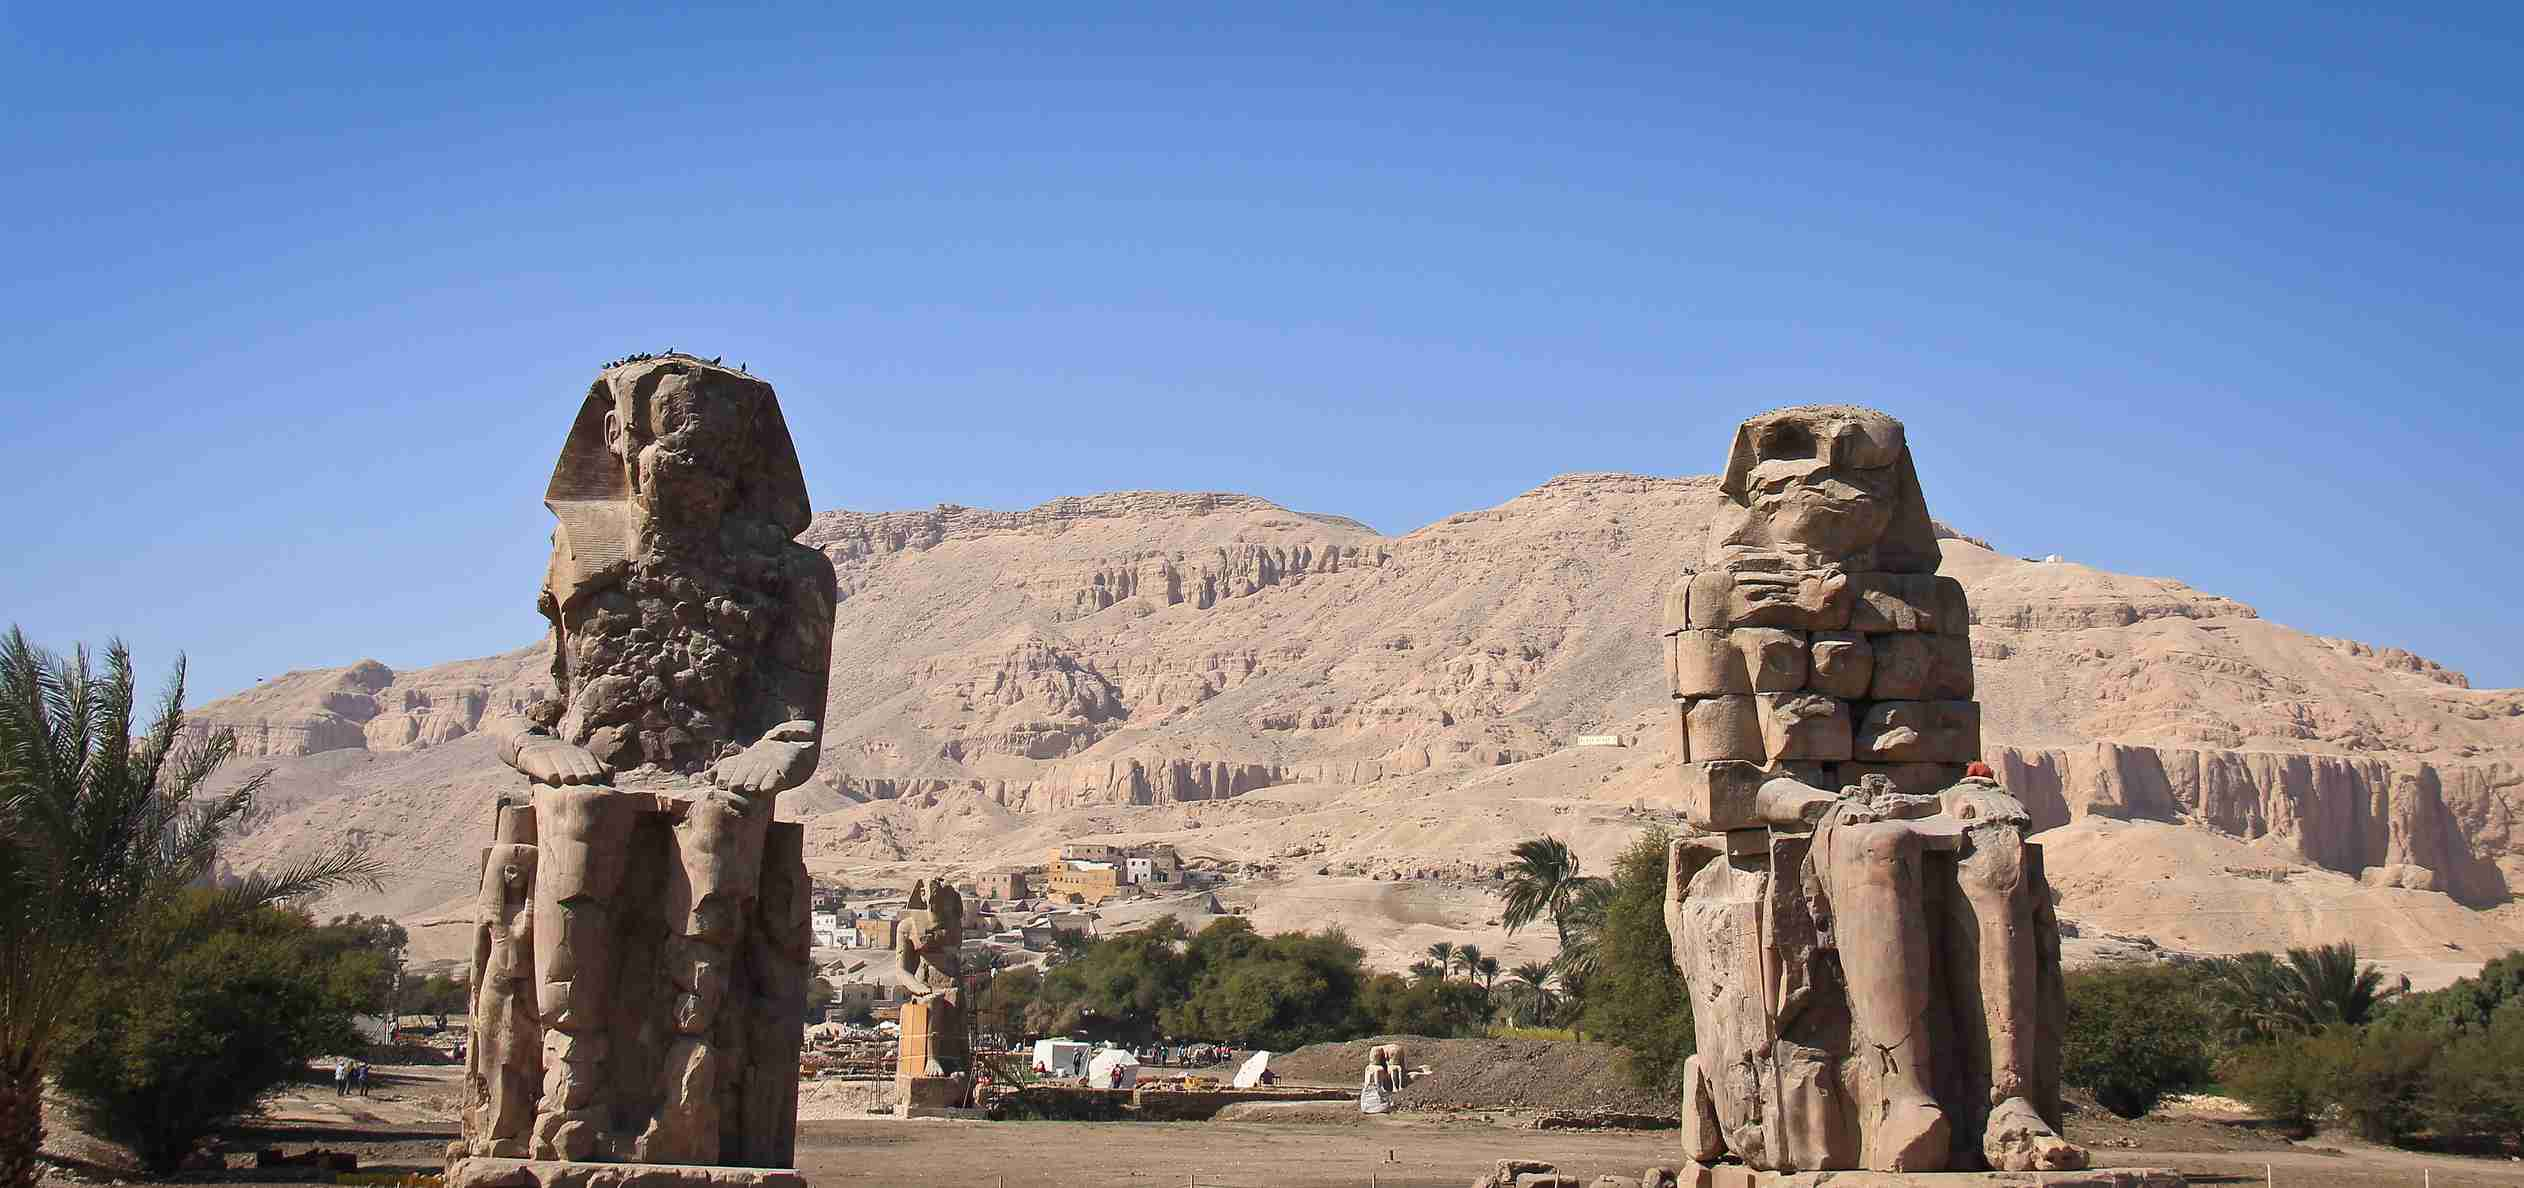 A mortuary temple located in Thebes in Egypt guarded by two statues of about 20 meters in height.